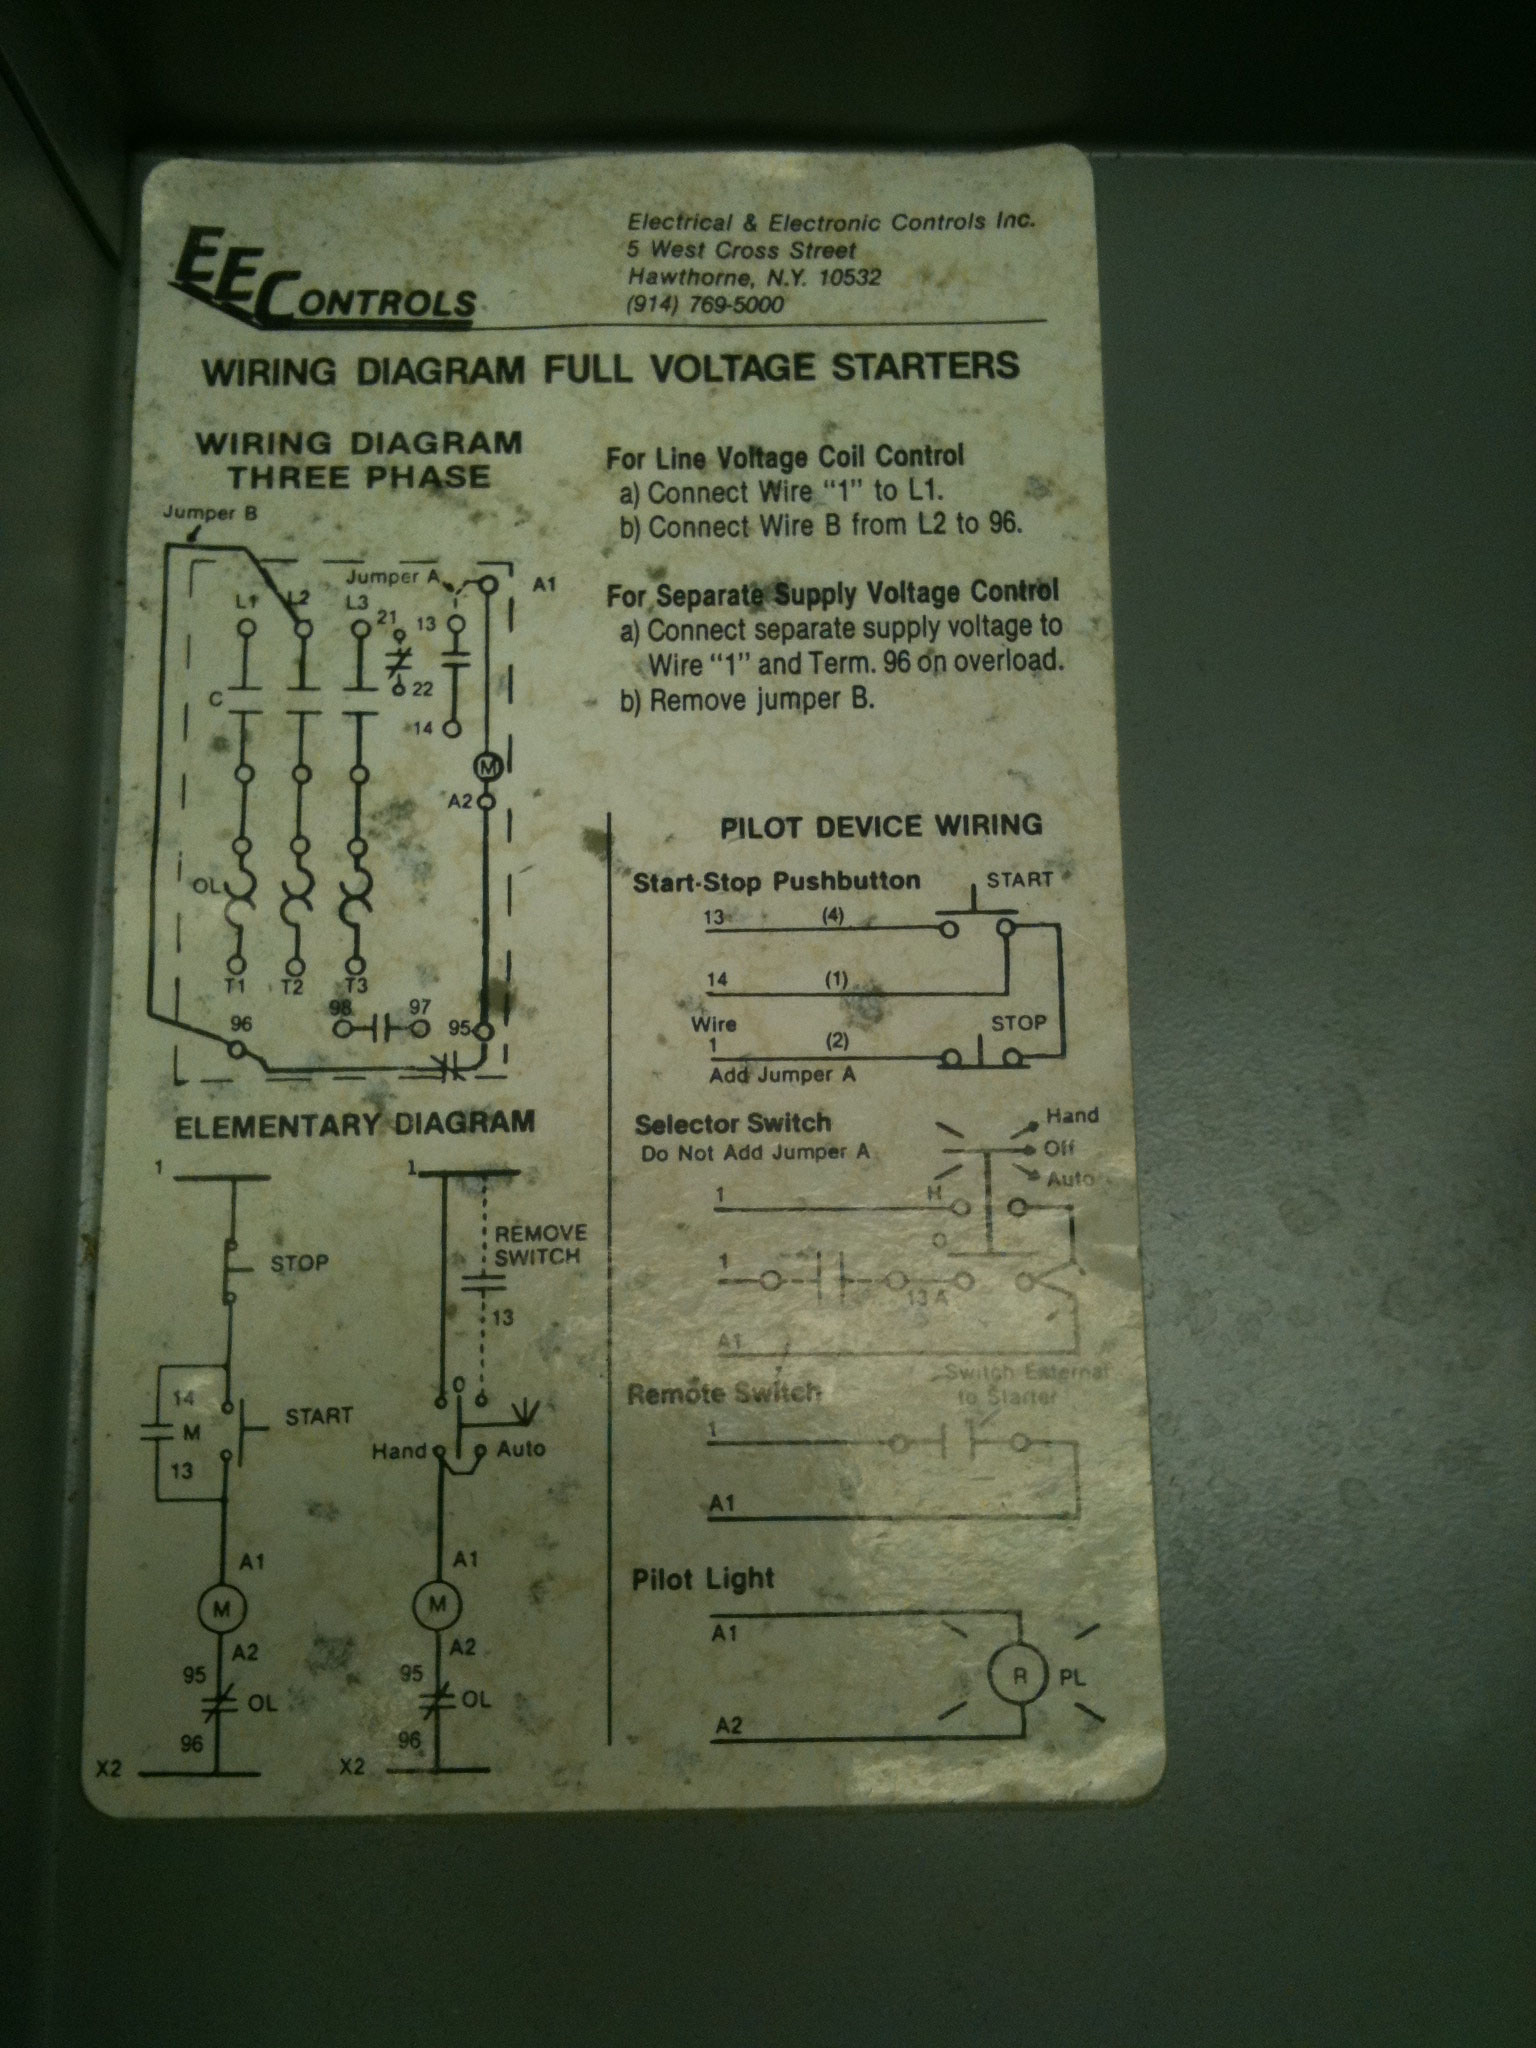 110 220 volt single phase motor wiring diagram how do i draw a stop start cicuit switching a 220 vac